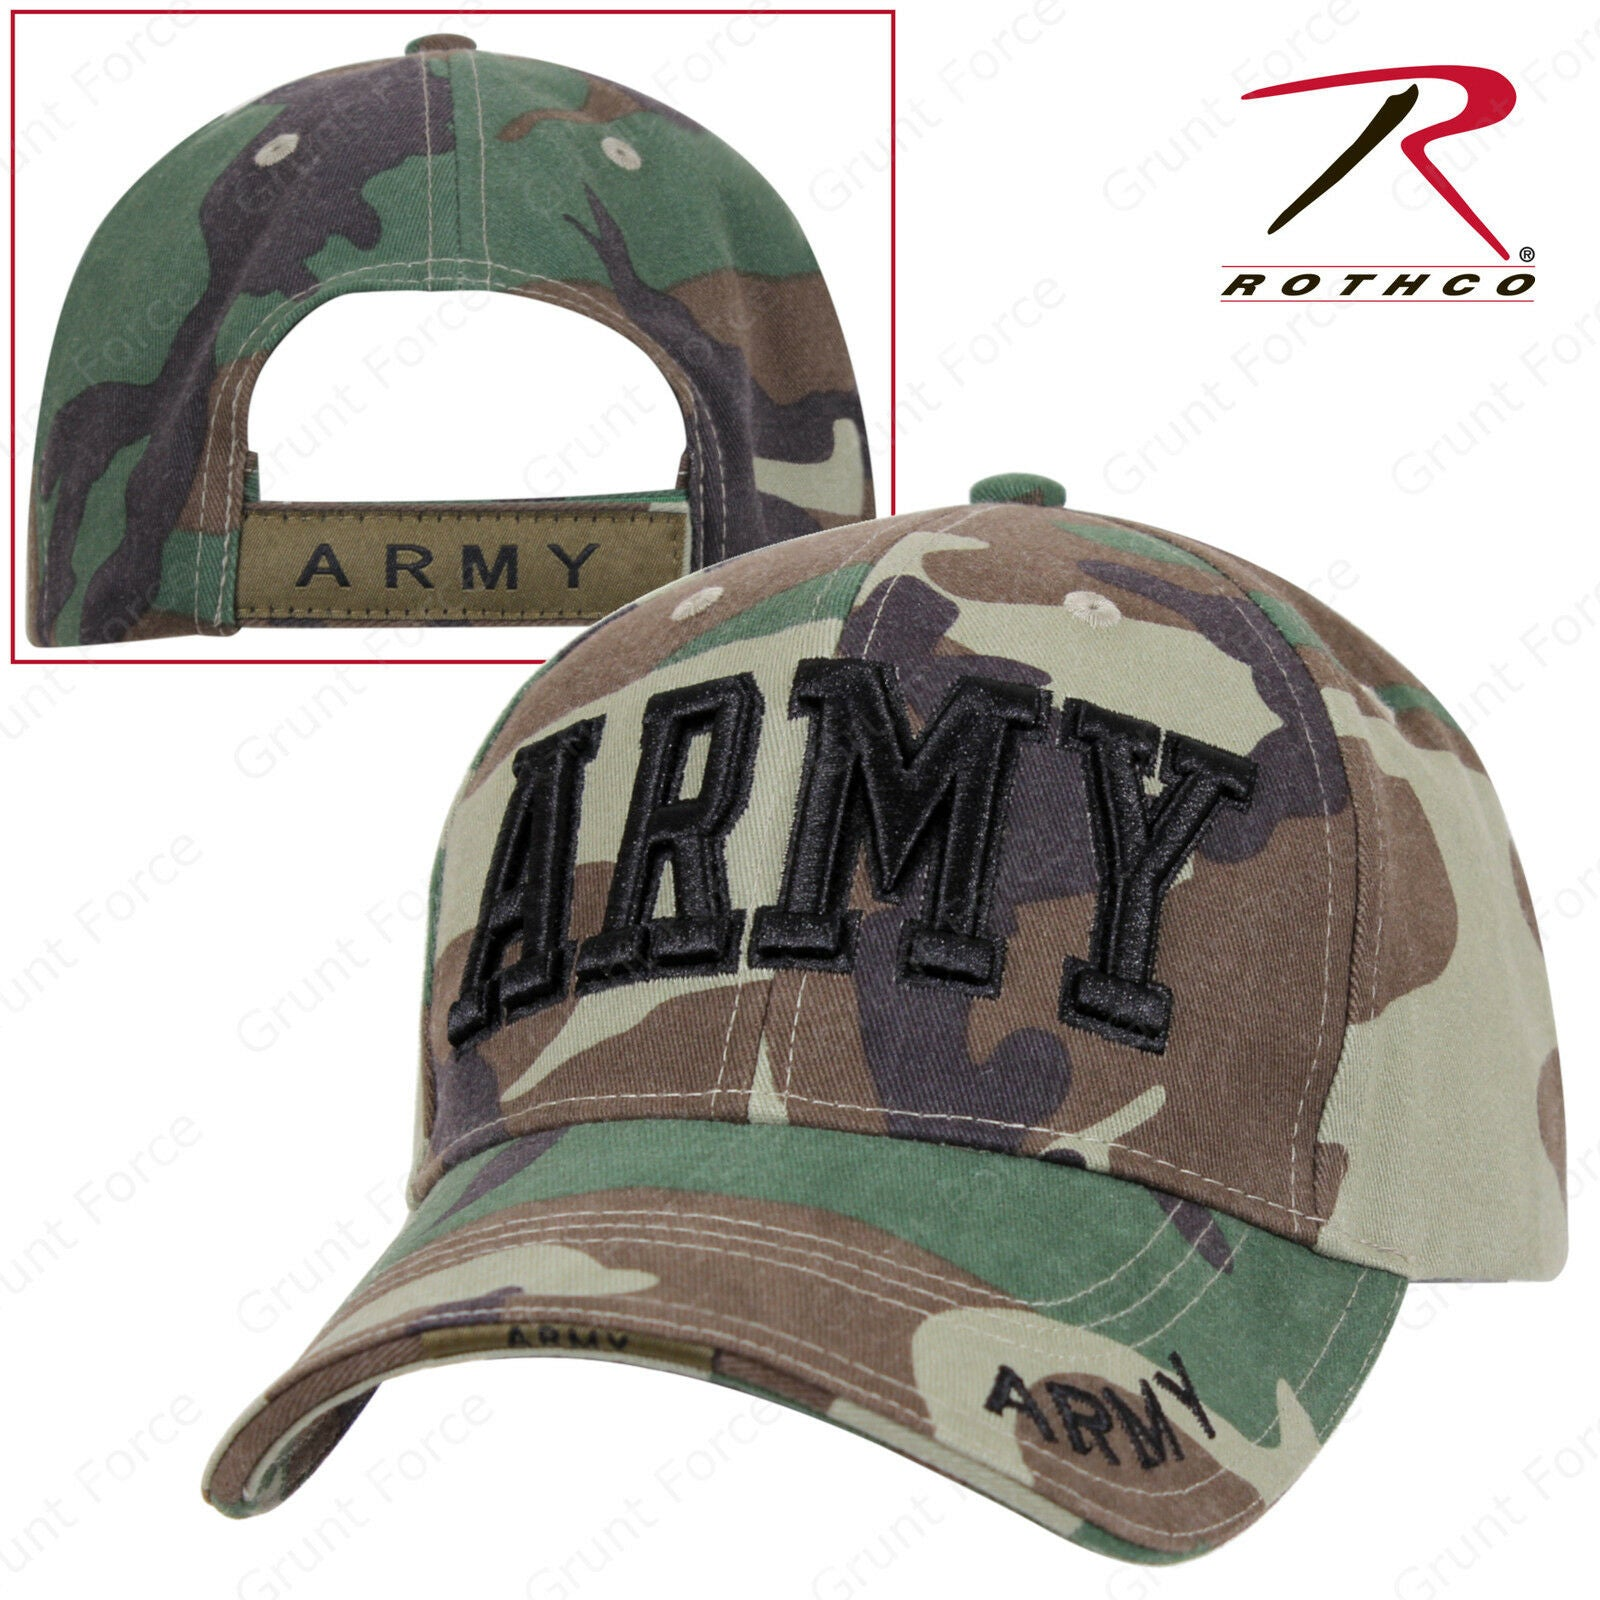 7a83bcd64 Rothco Deluxe ARMY Embroidered Mid-Low Pro Adjustable Baseball Cap ...